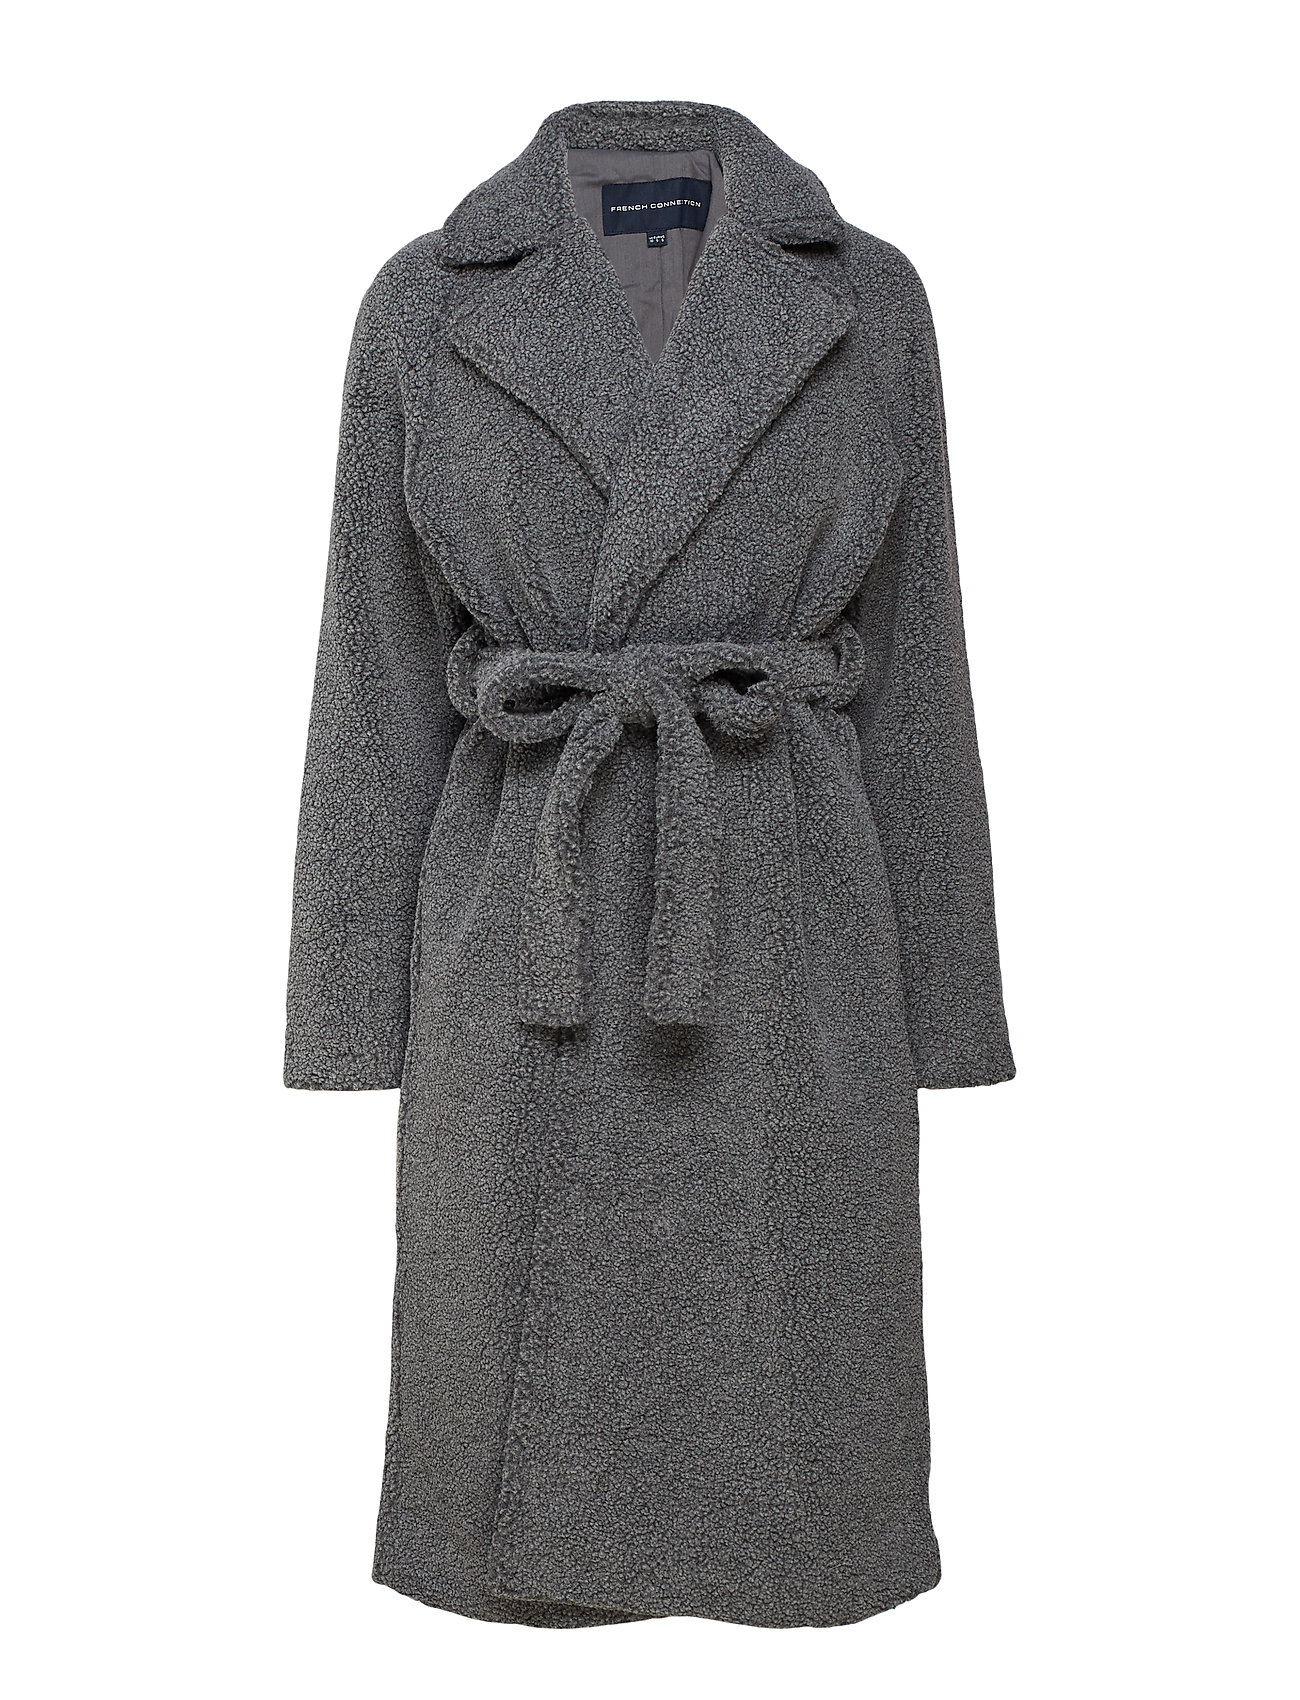 French Connection ARABELLA FAUX SHEARLING LNG CT - CHARCOAL GREY